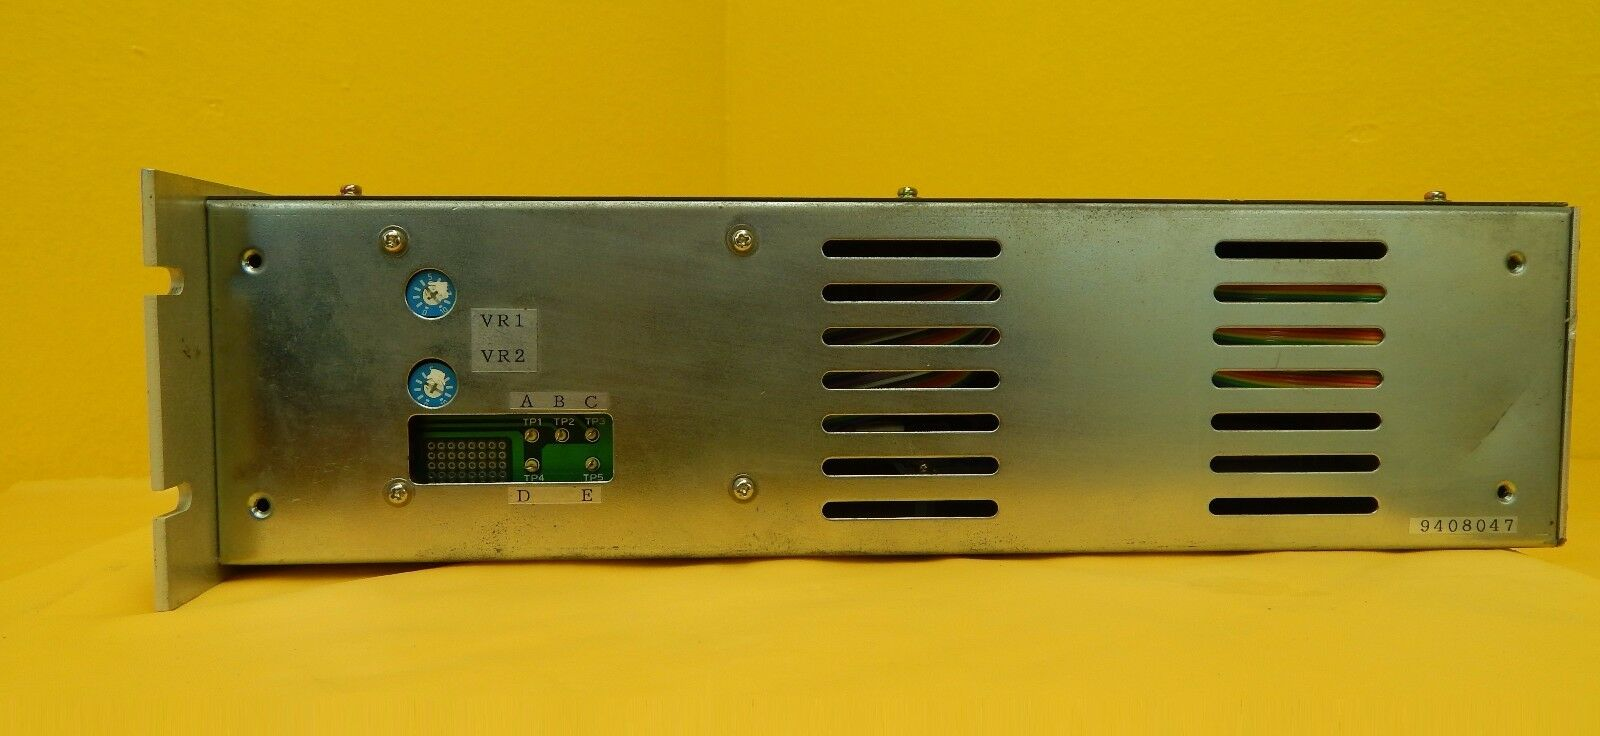 Pearl Kogyo ZDK-916E RF Power Generator Tuner Controller Used Working